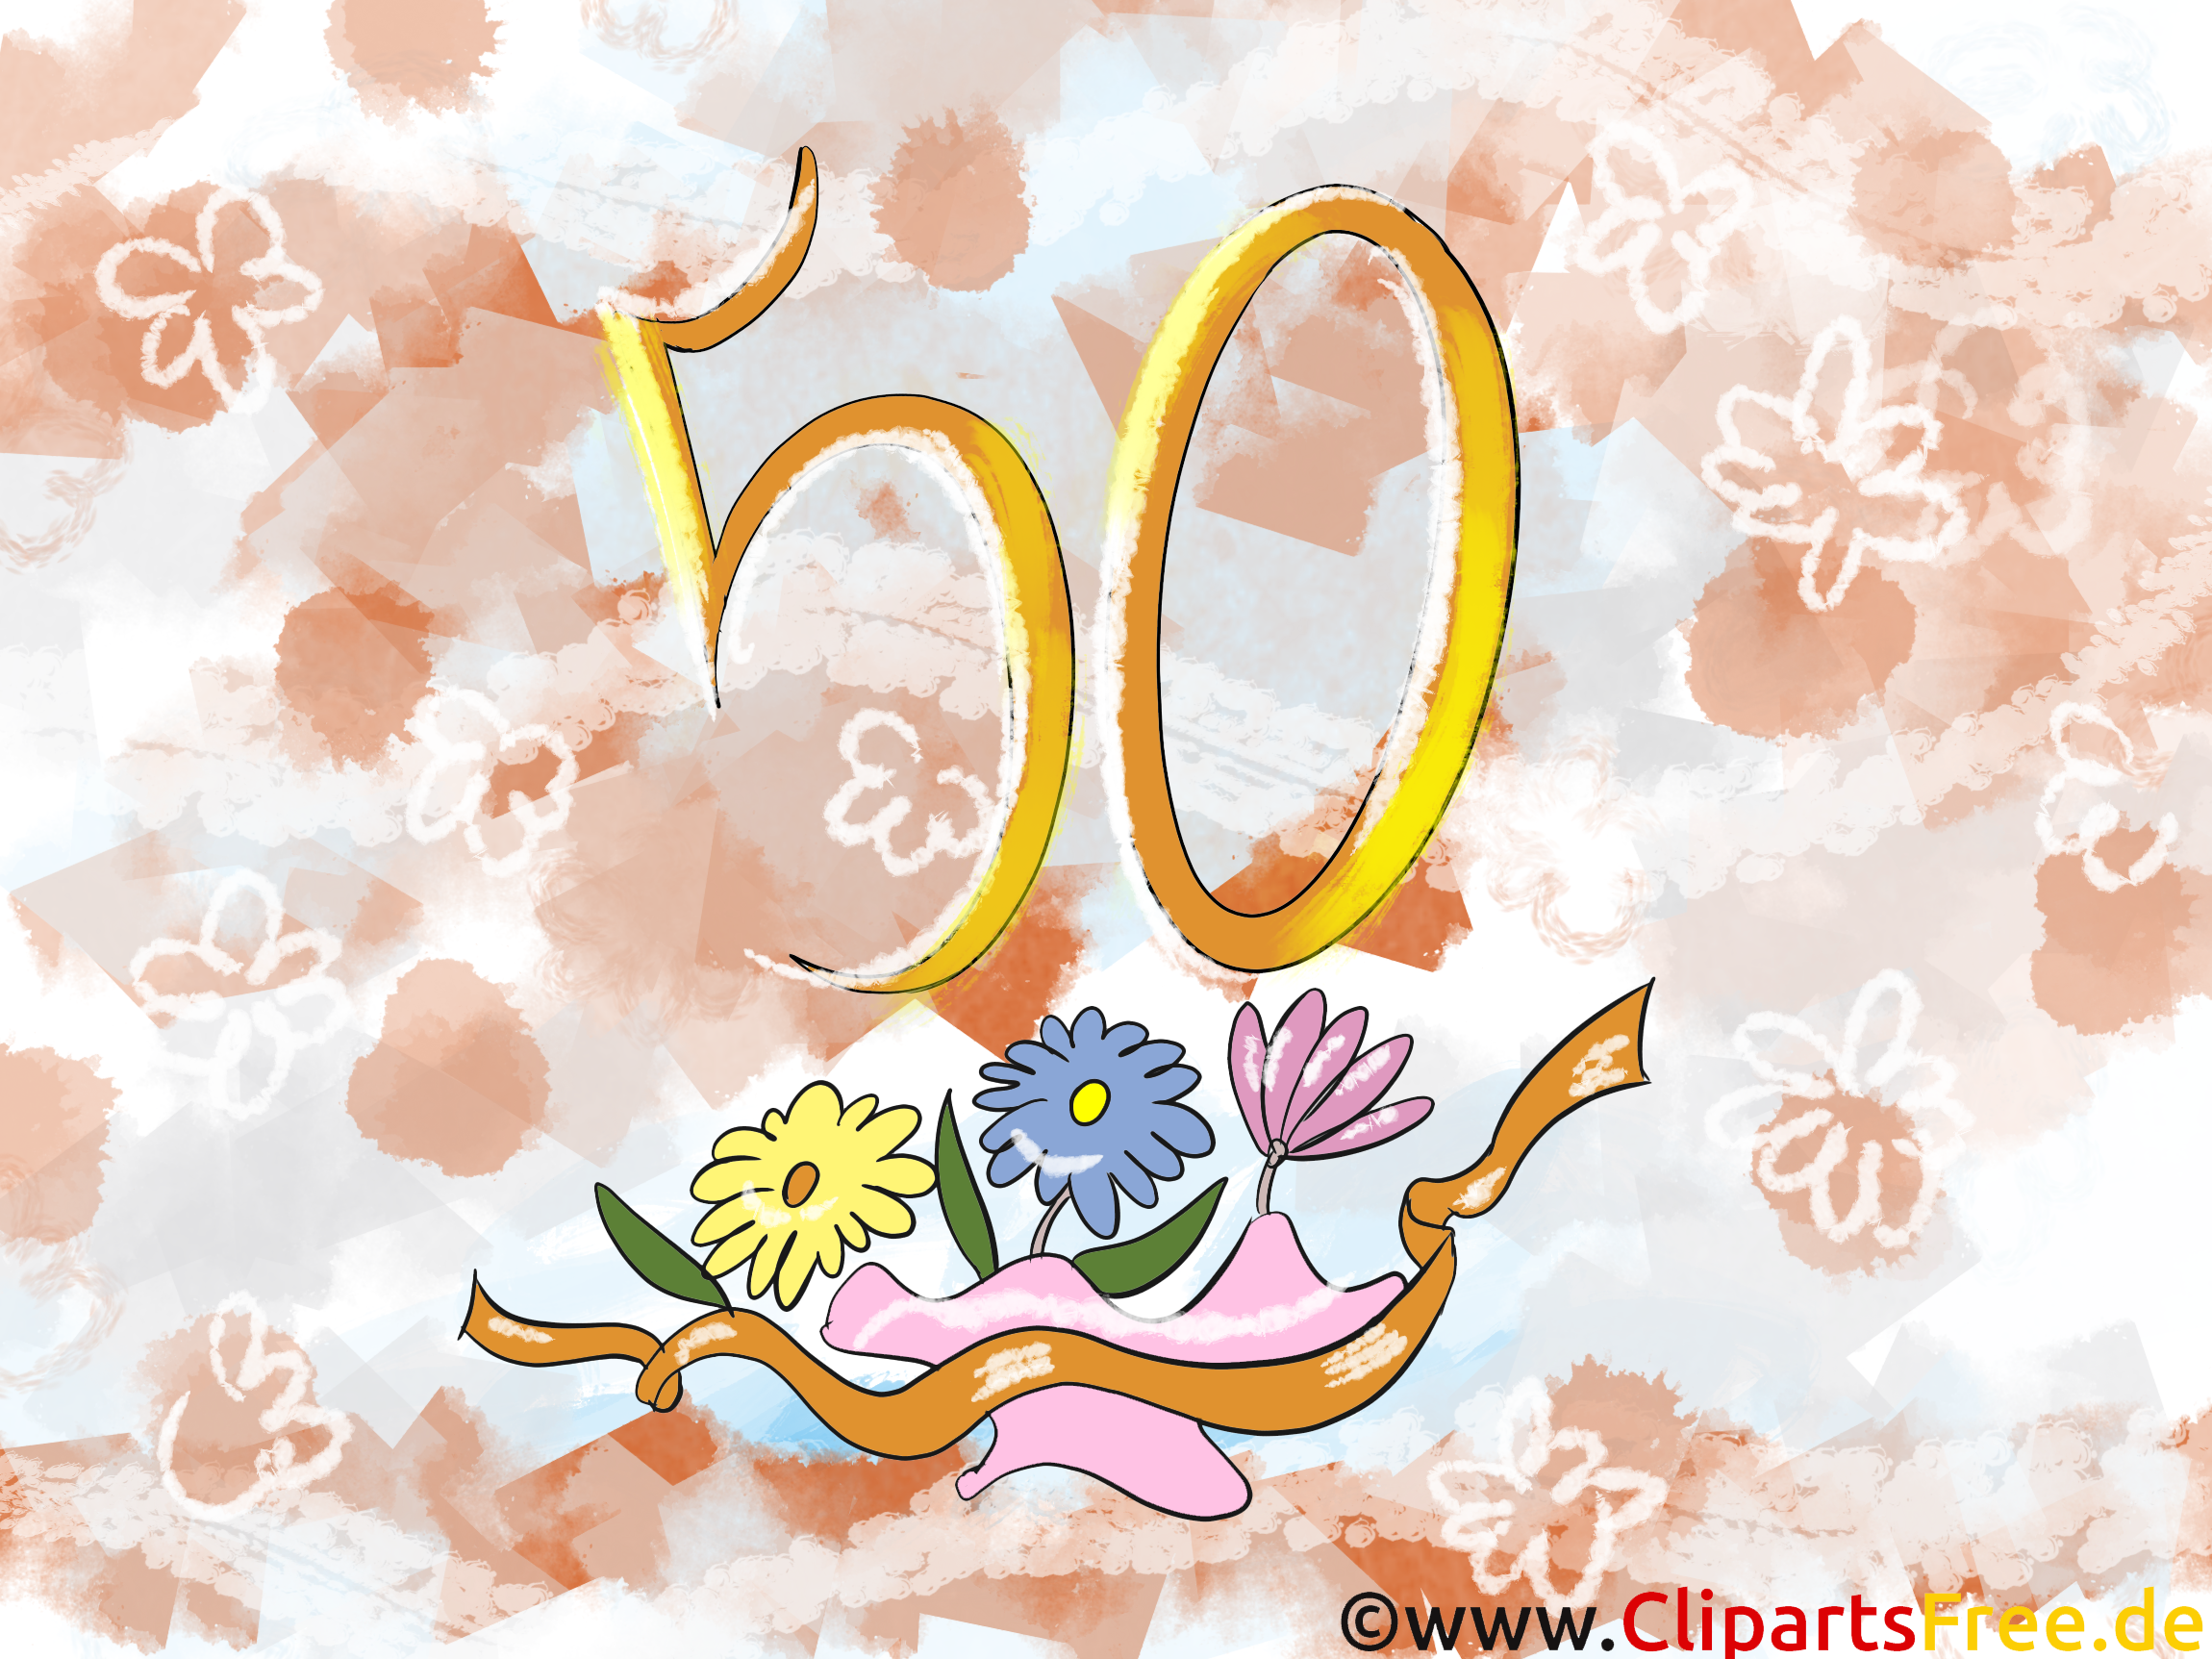 happy birthday 50 jahre geburtstagsgruss clipart bild karte. Black Bedroom Furniture Sets. Home Design Ideas